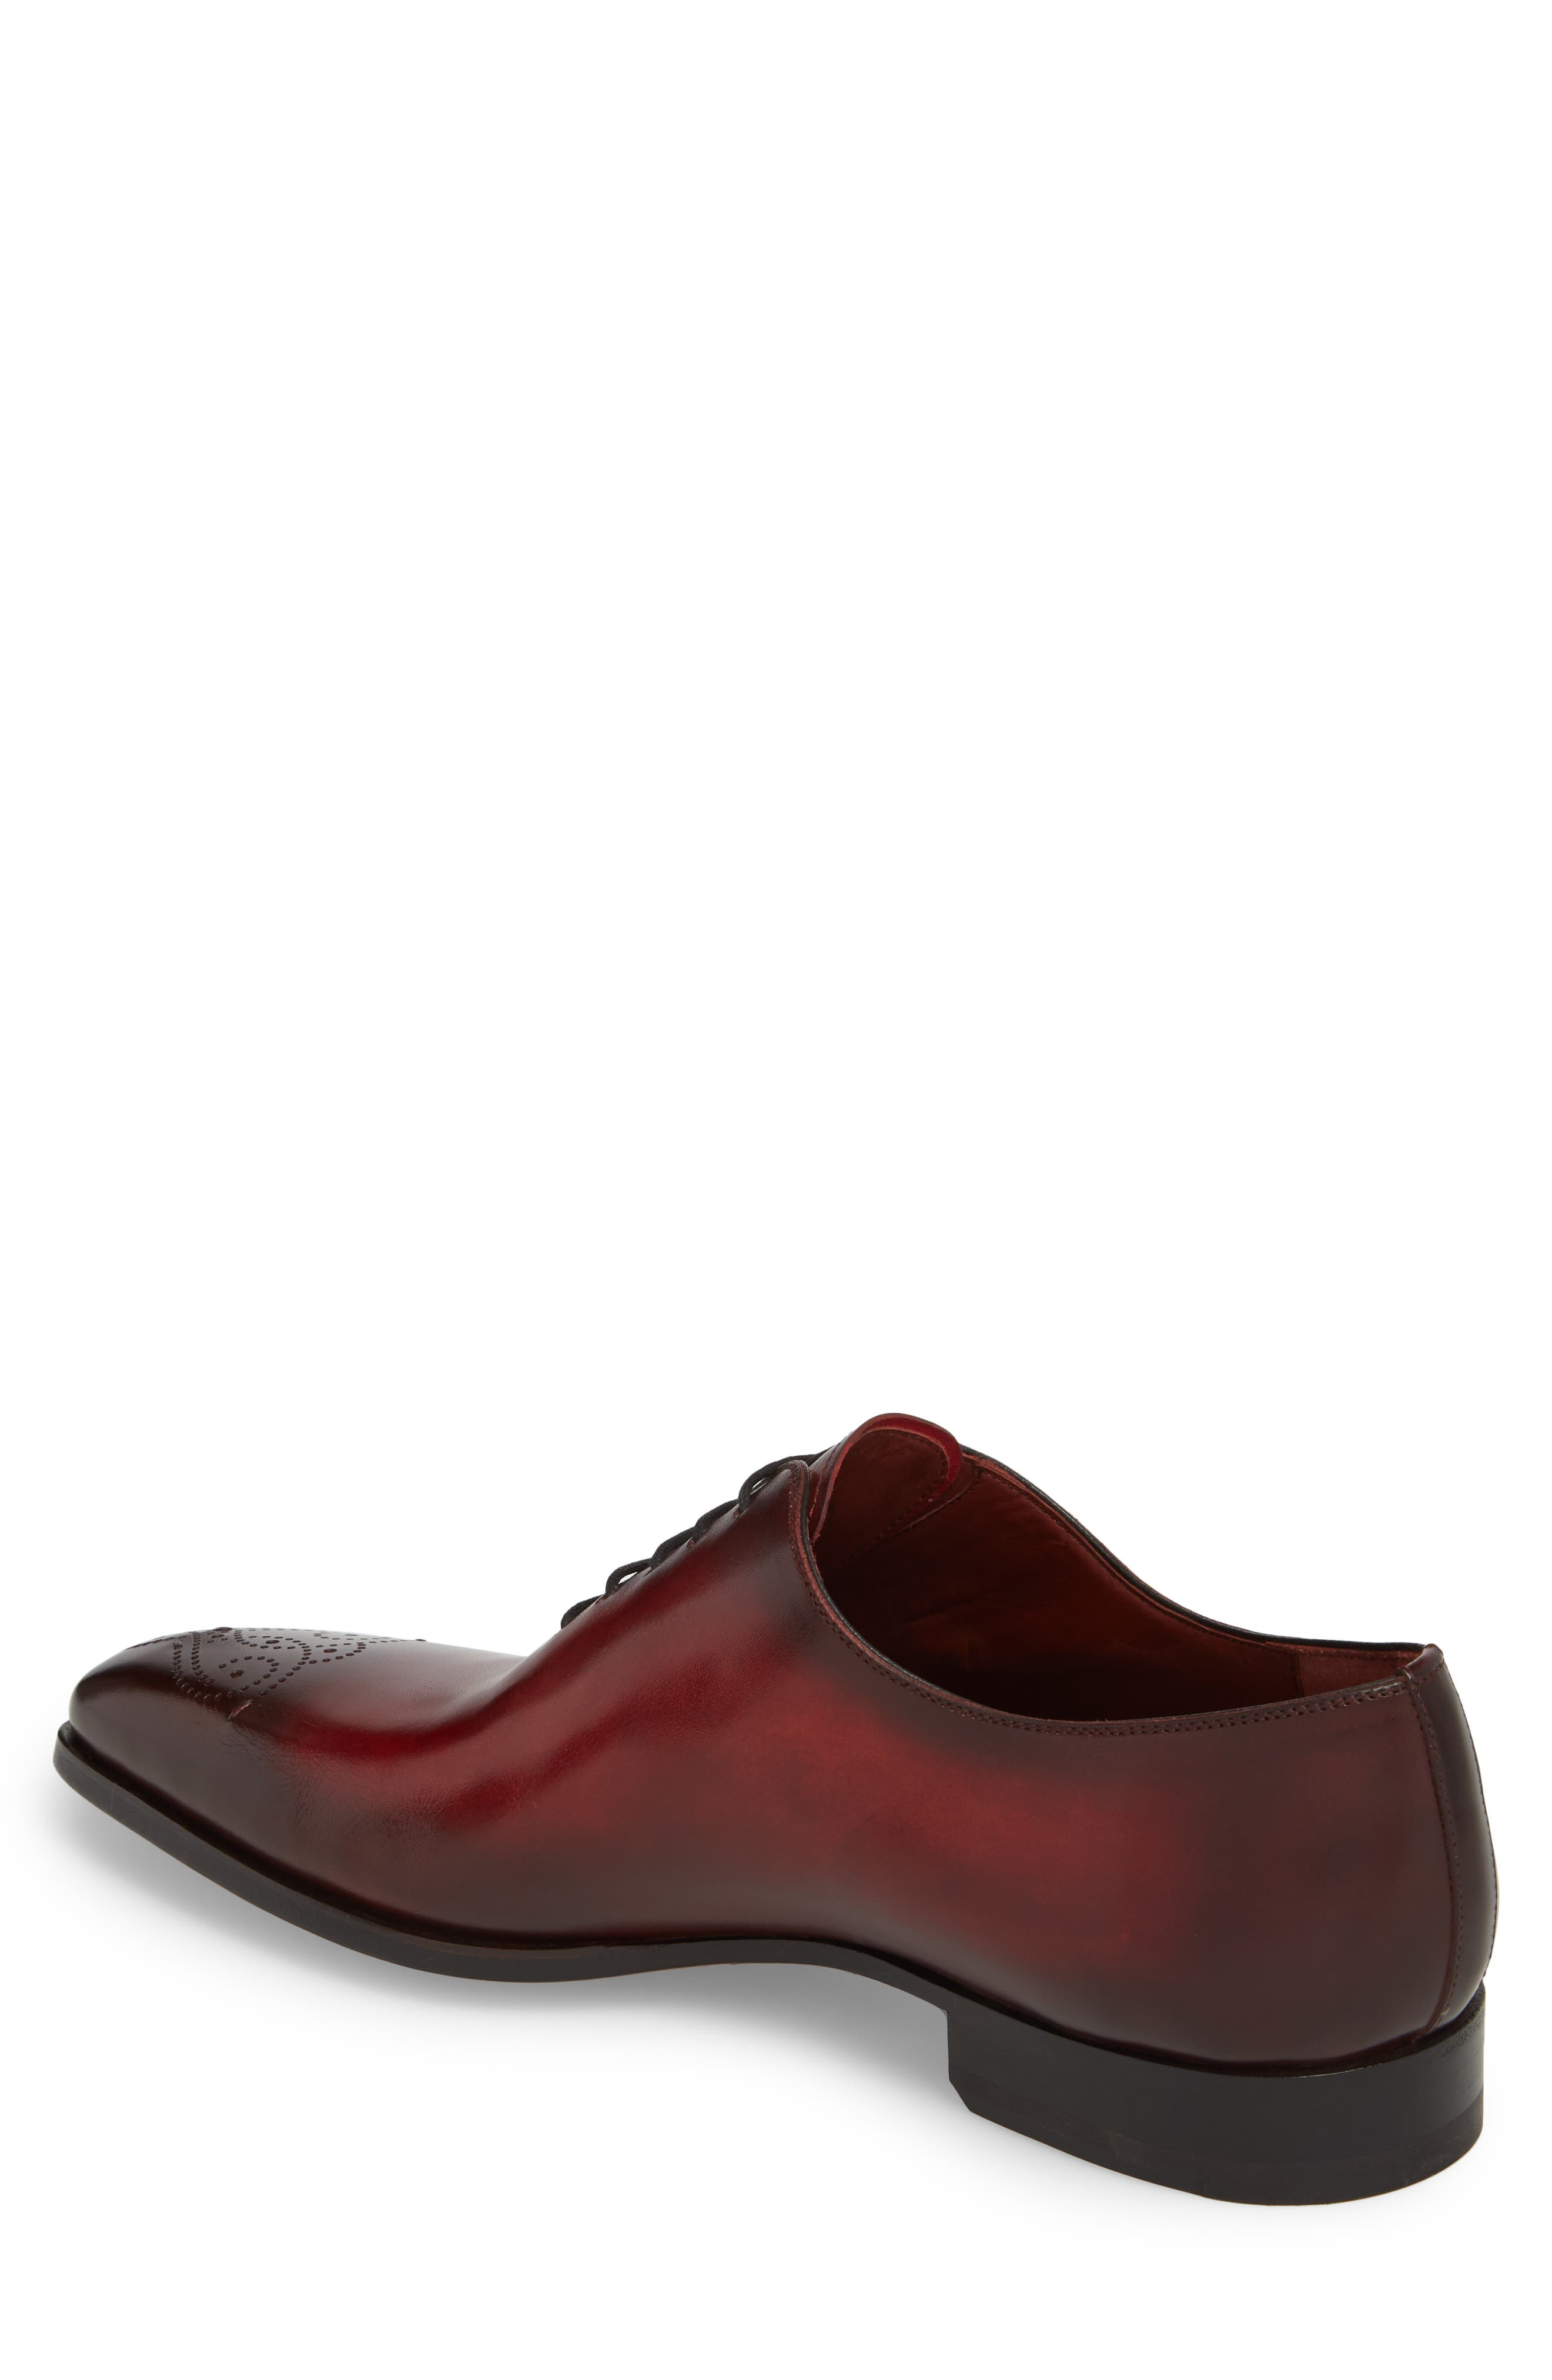 Vada Brogued Whole Cut Shoe,                             Alternate thumbnail 2, color,                             Red Leather